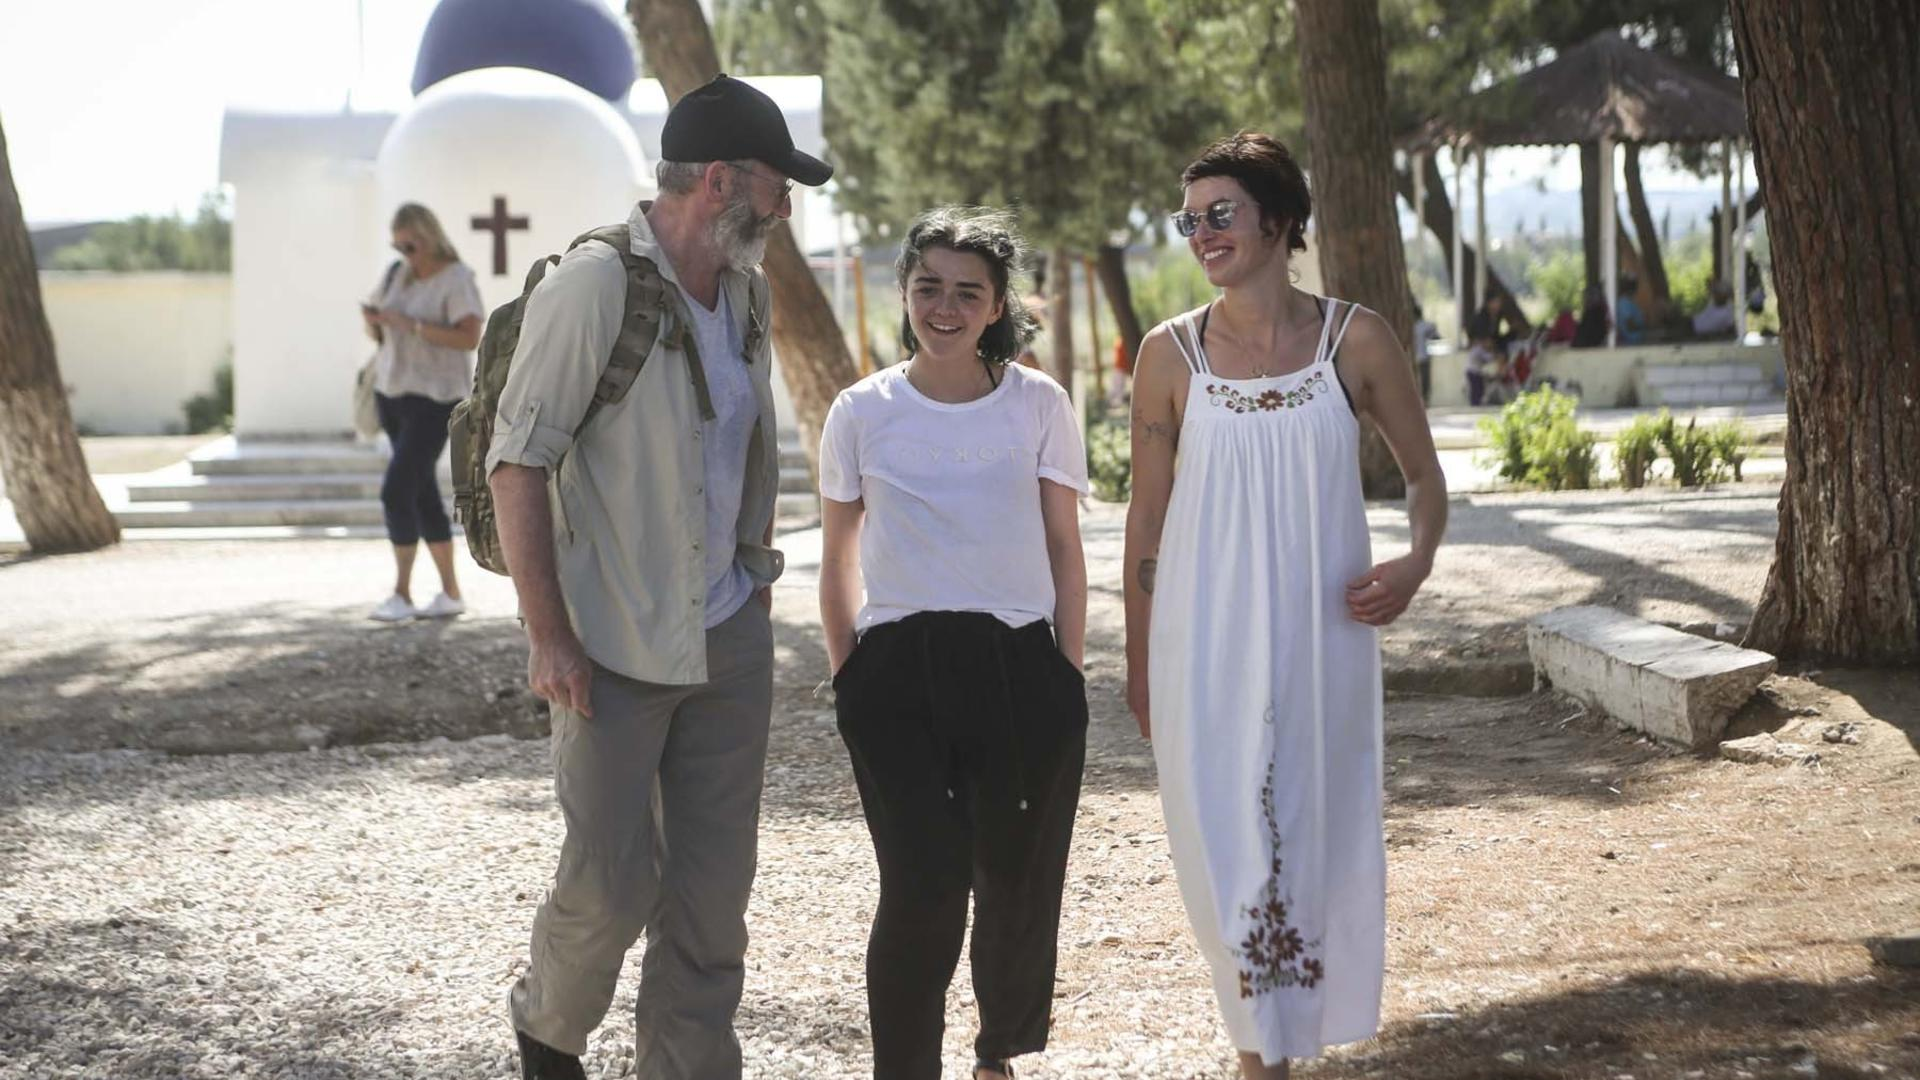 Game of Thrones actors Liam Cunningham, Maisie Williams and Lena Headey walk through a refugee site in northern Greece